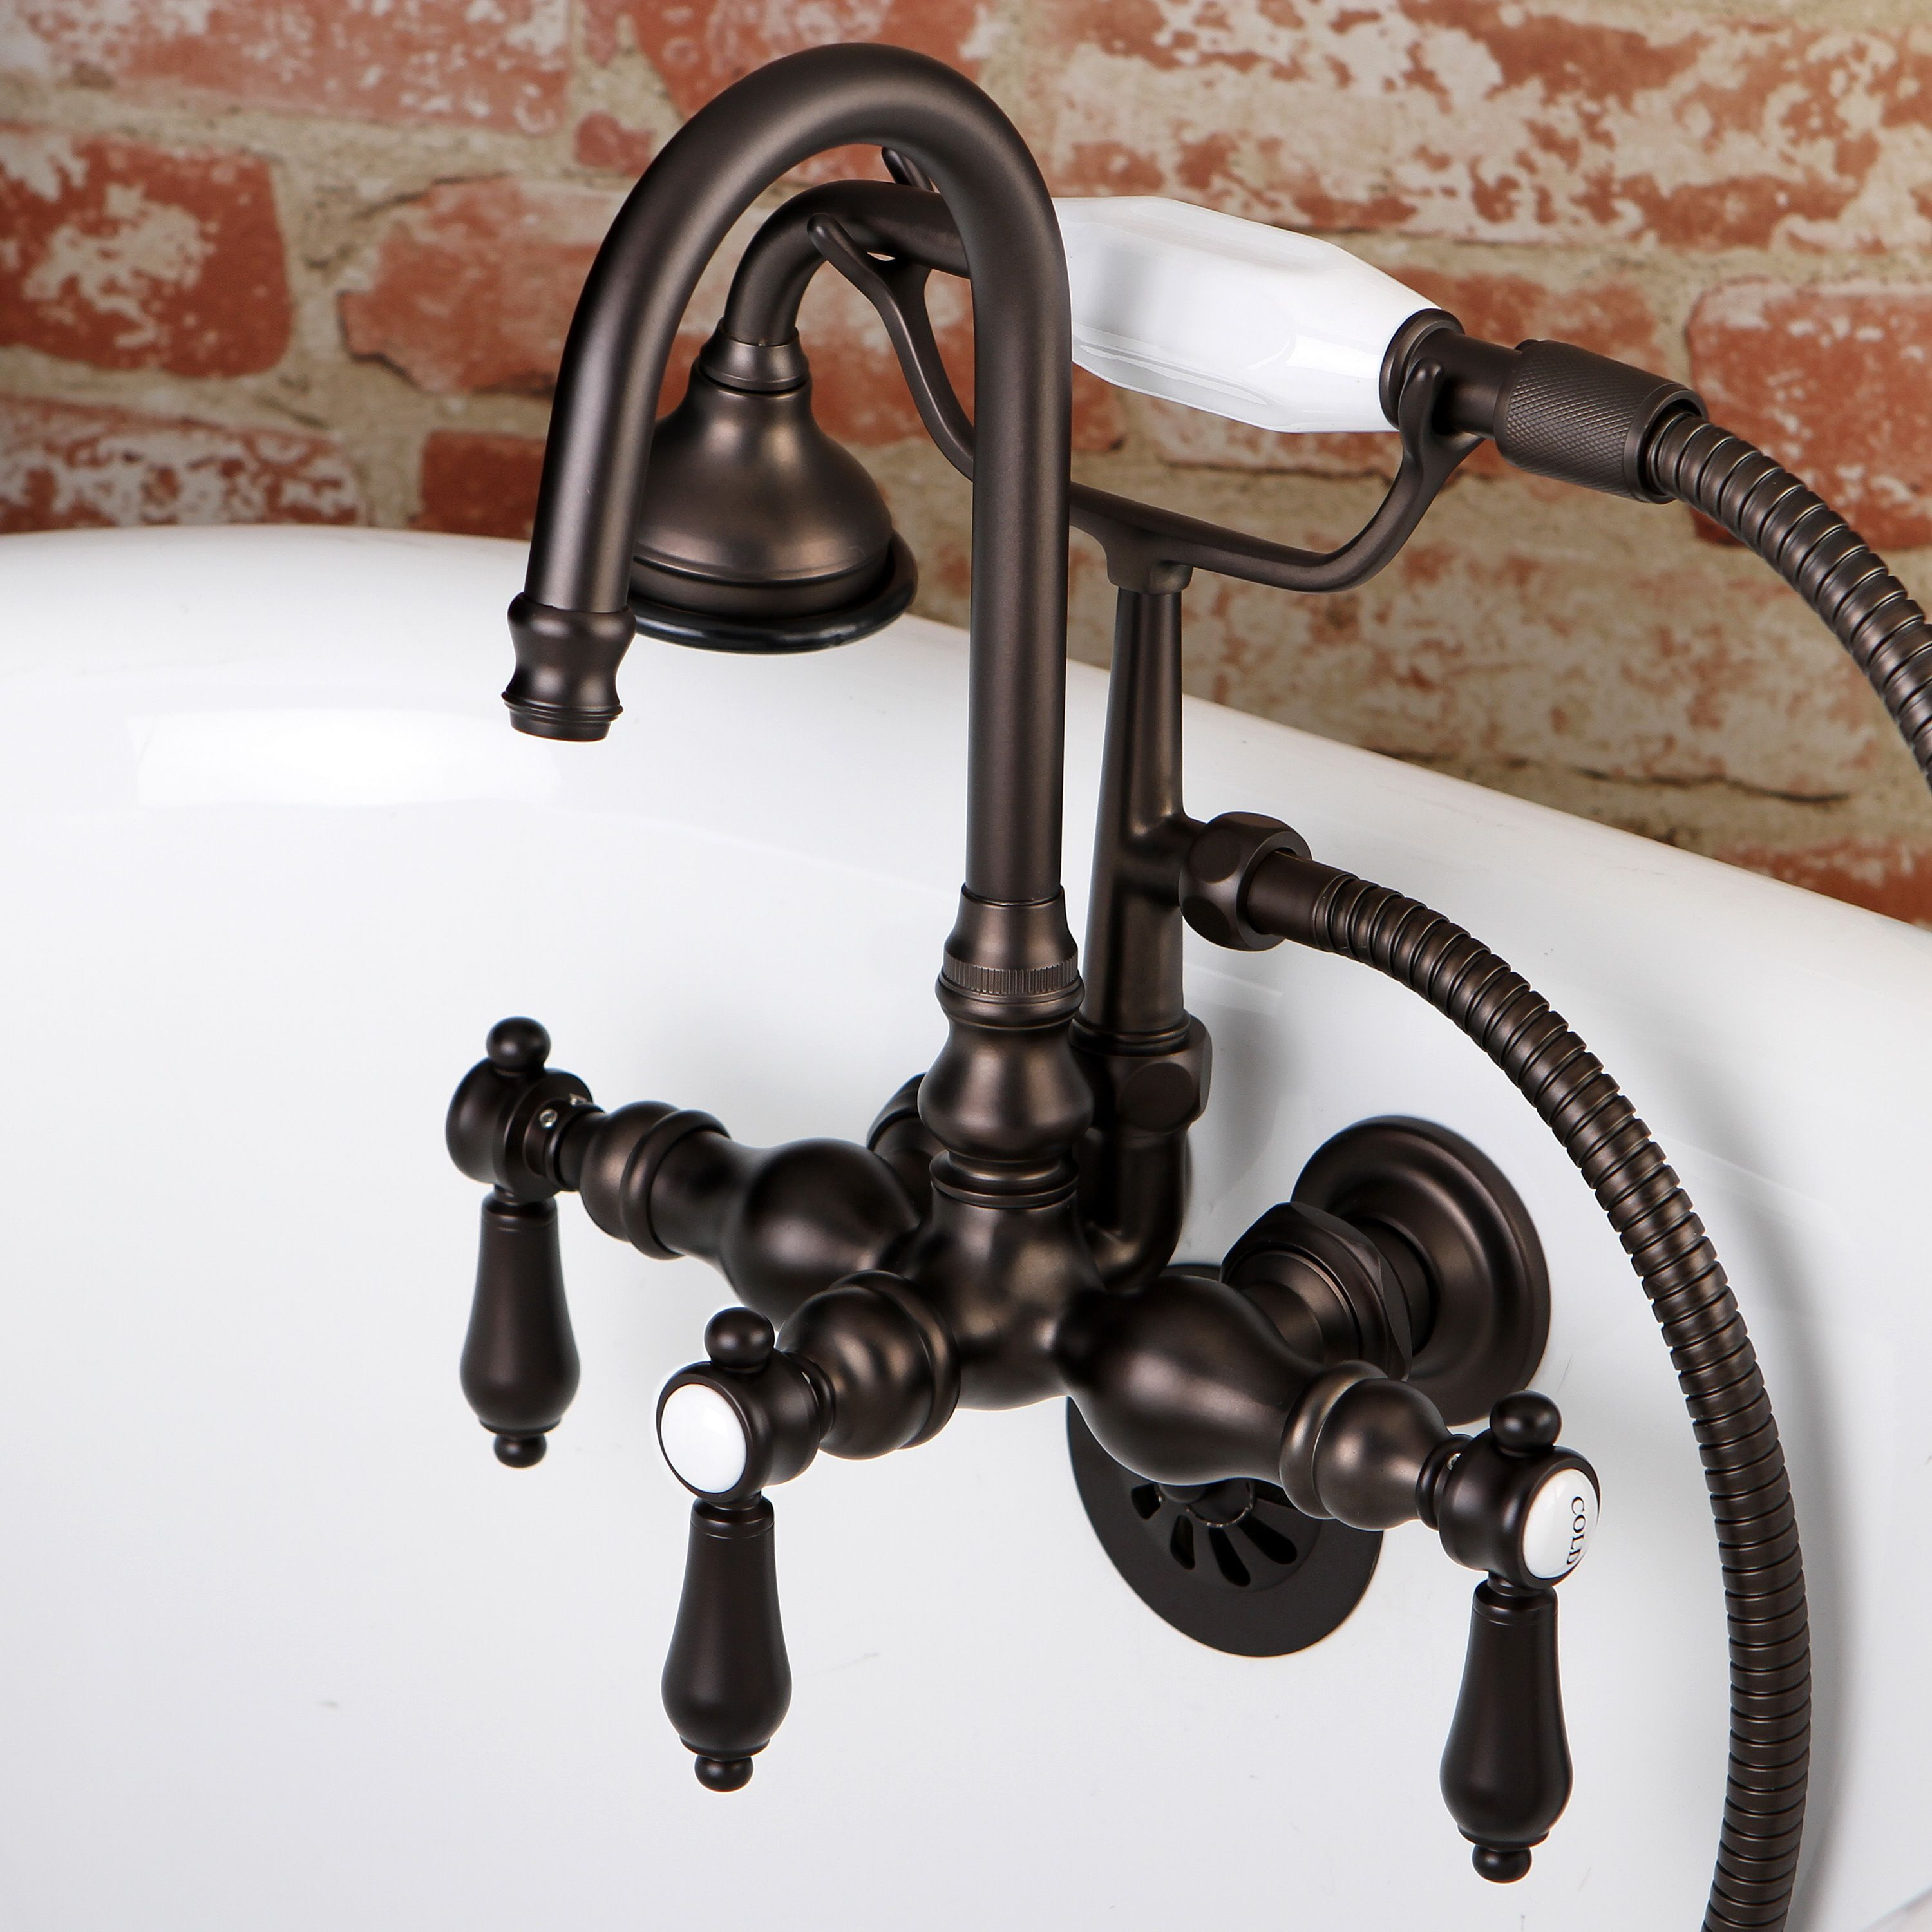 Kingston Bathtub Wall Mount Claw Foot Tub Filler With Handshower In Oil Rubbed Bronze Clawfoot Tub Faucet Clawfoot Tub Wall Mount Tub Faucet